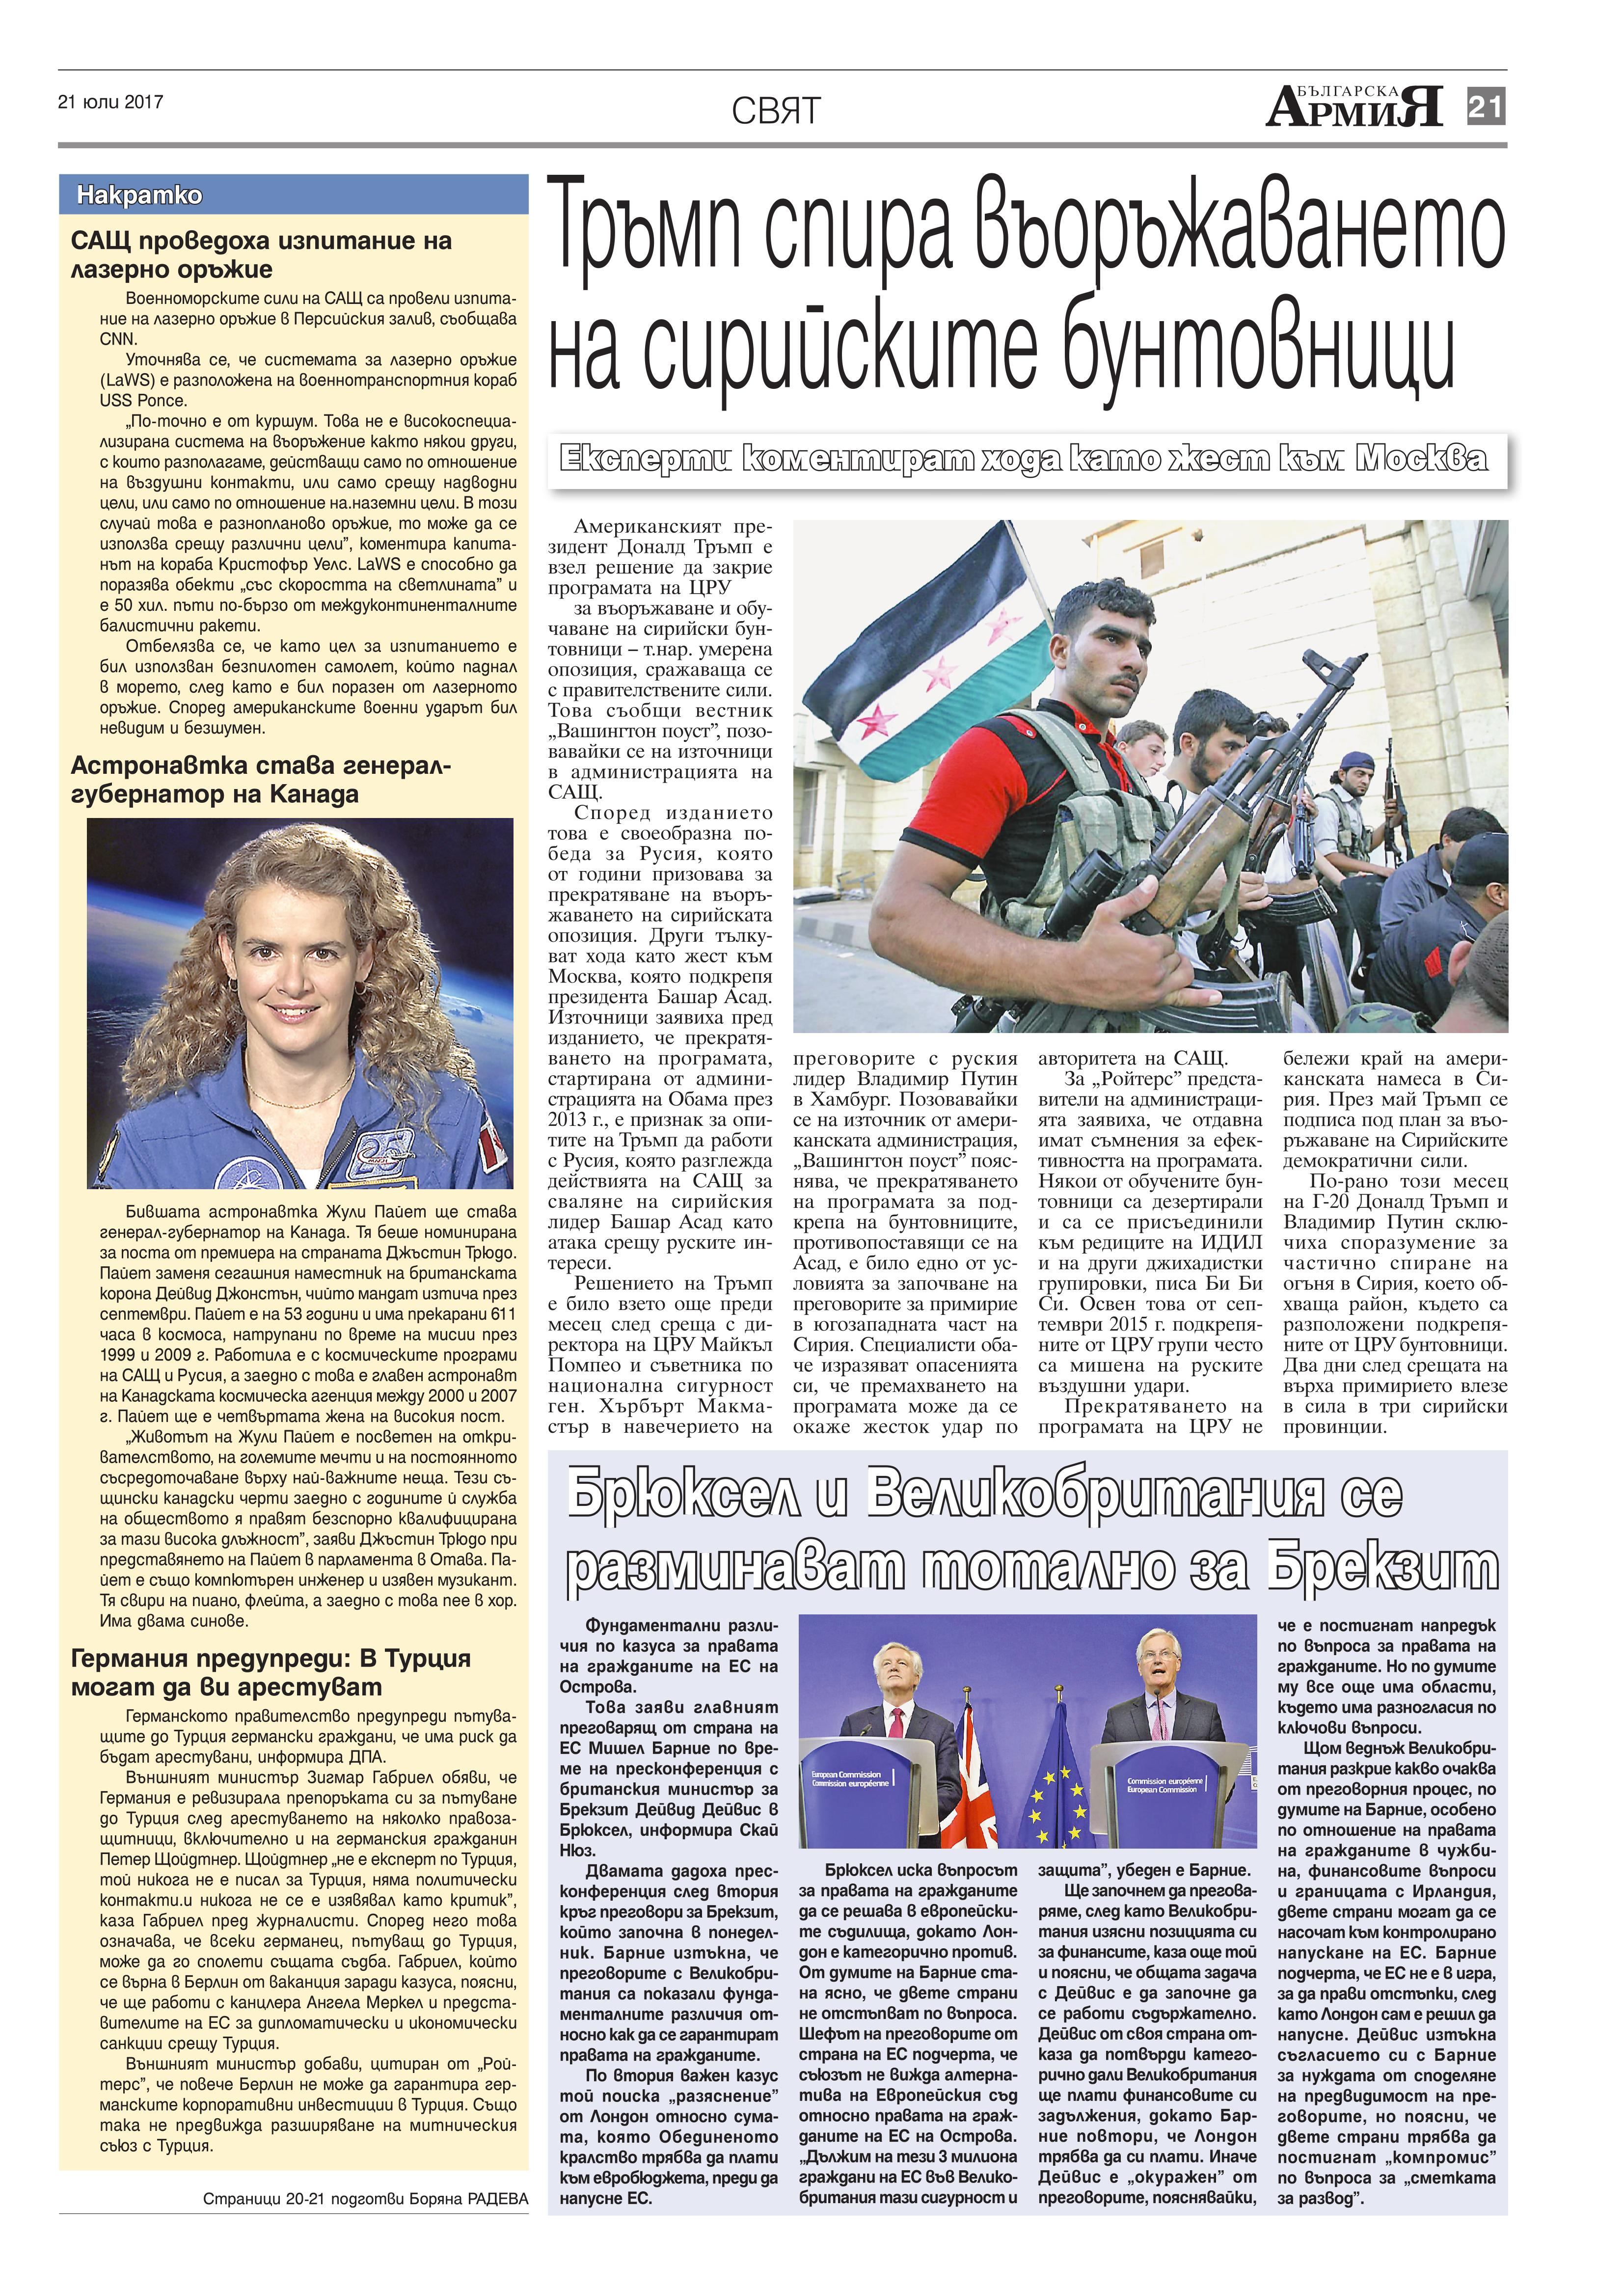 https://www.armymedia.bg/wp-content/uploads/2015/06/21.page1_-26.jpg